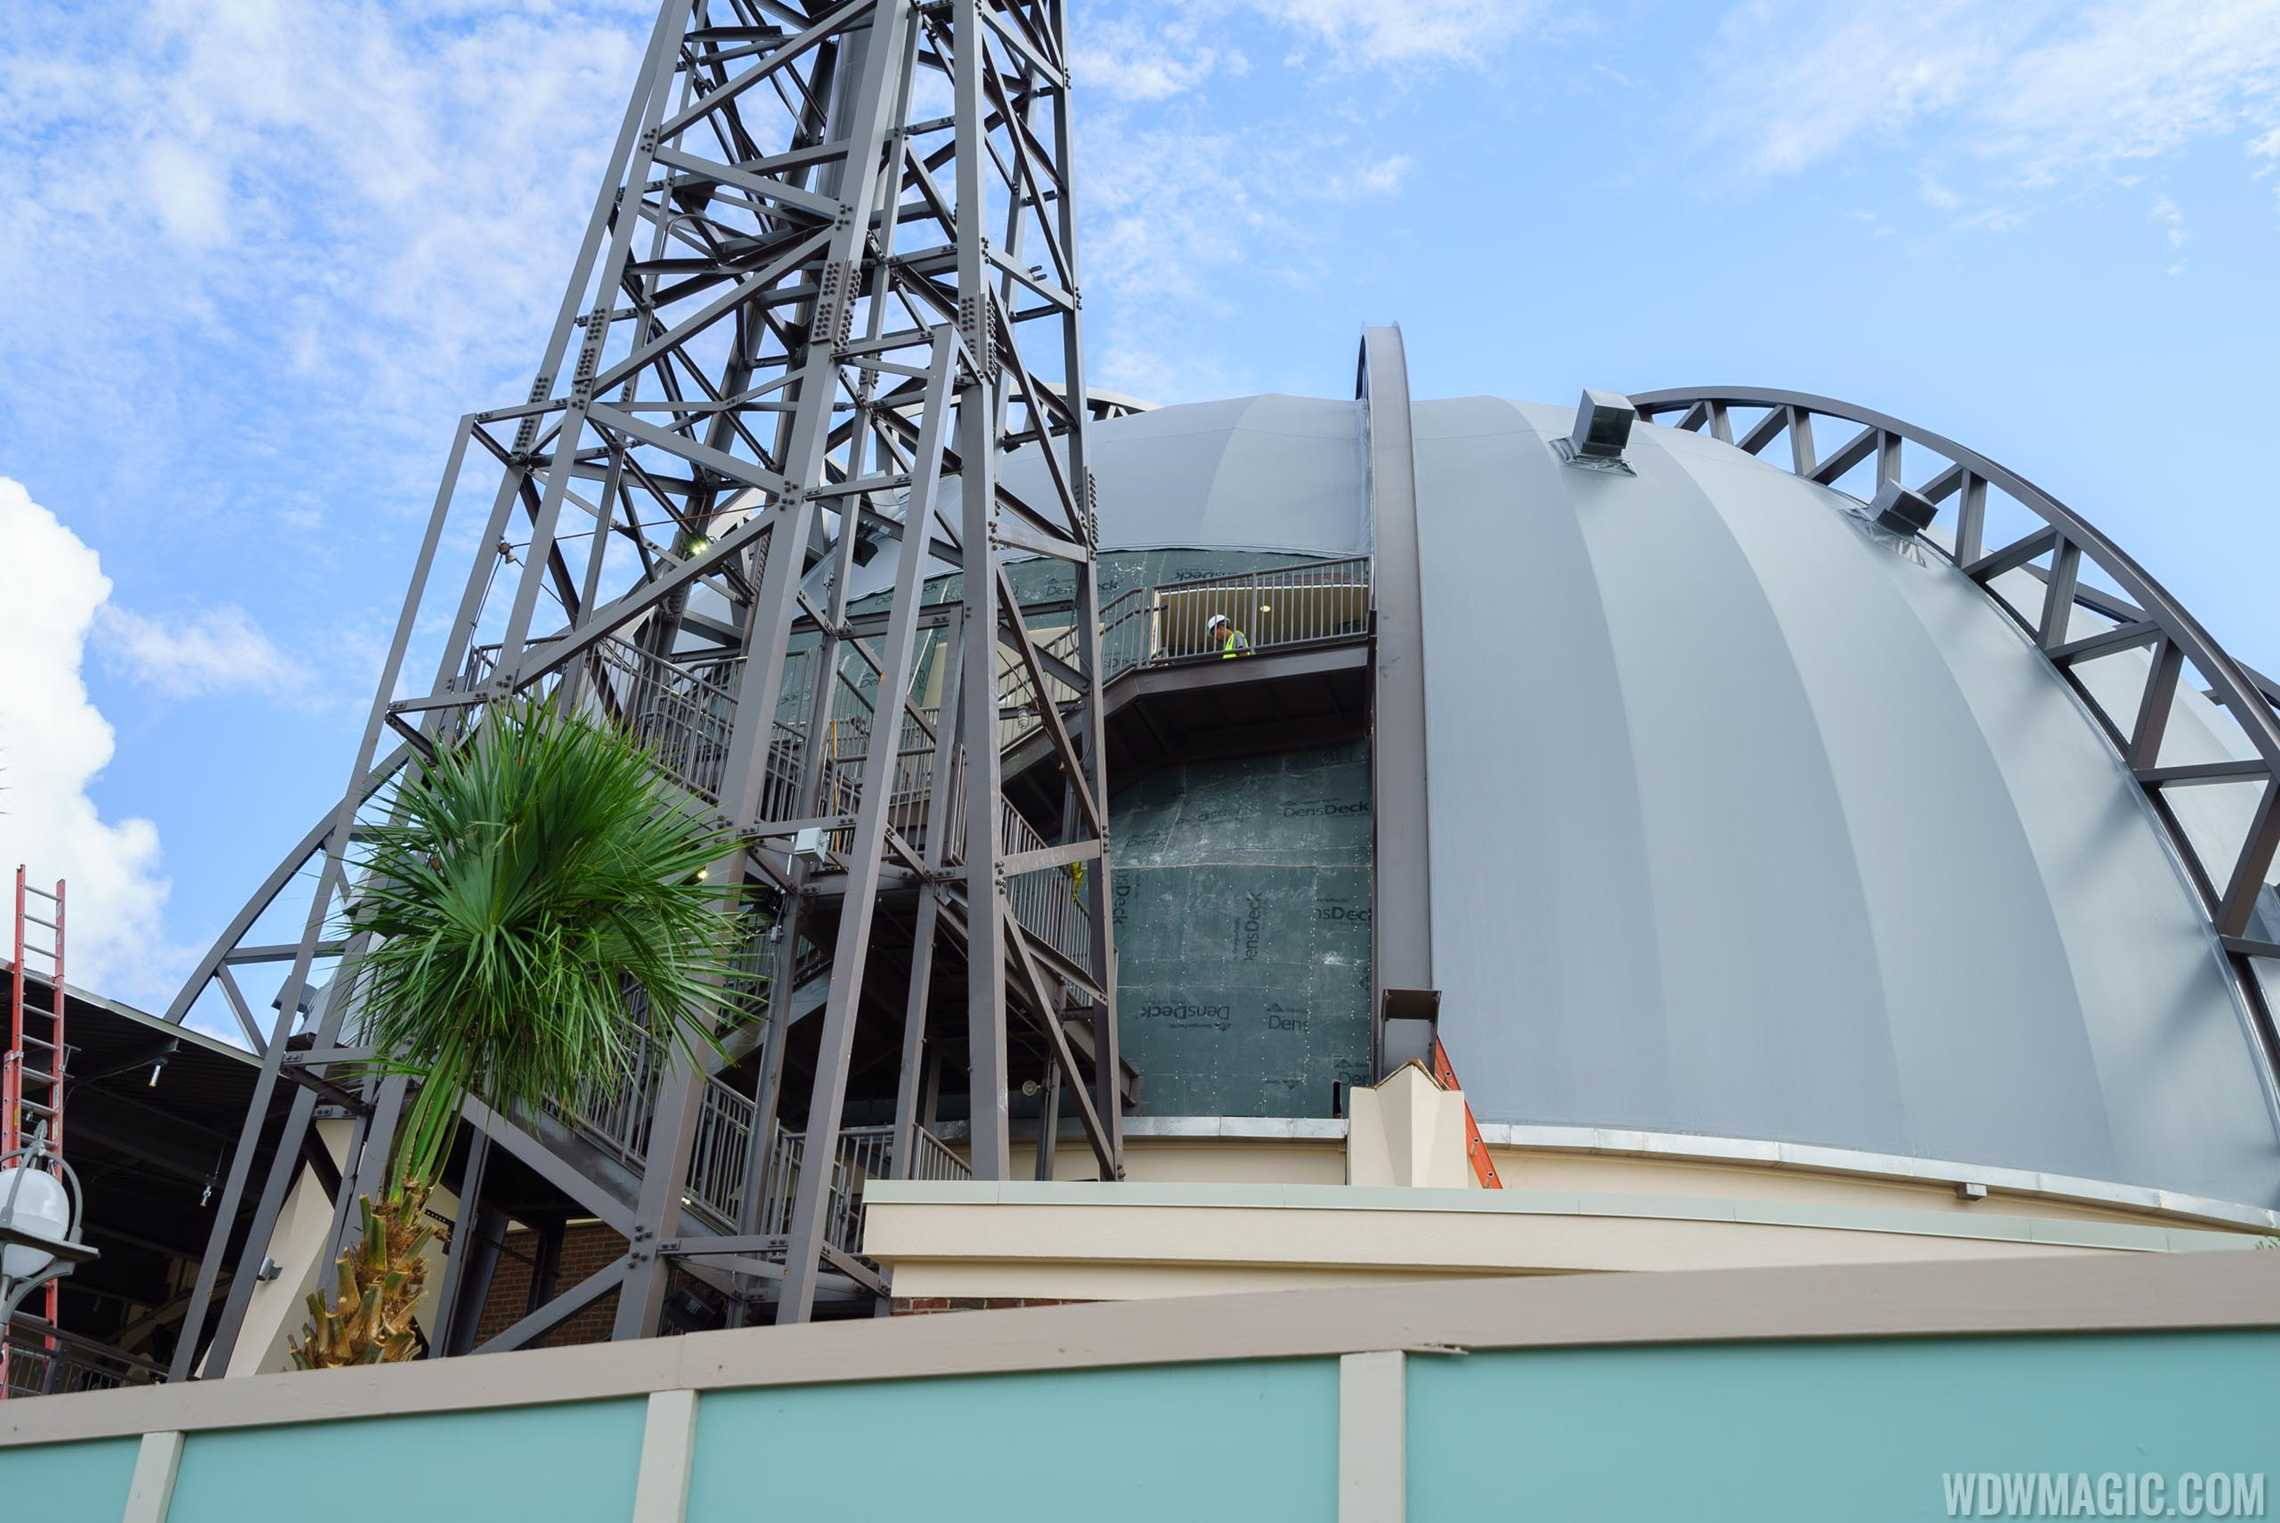 Stargazers Bar construction at Planet Hollywood Observatory